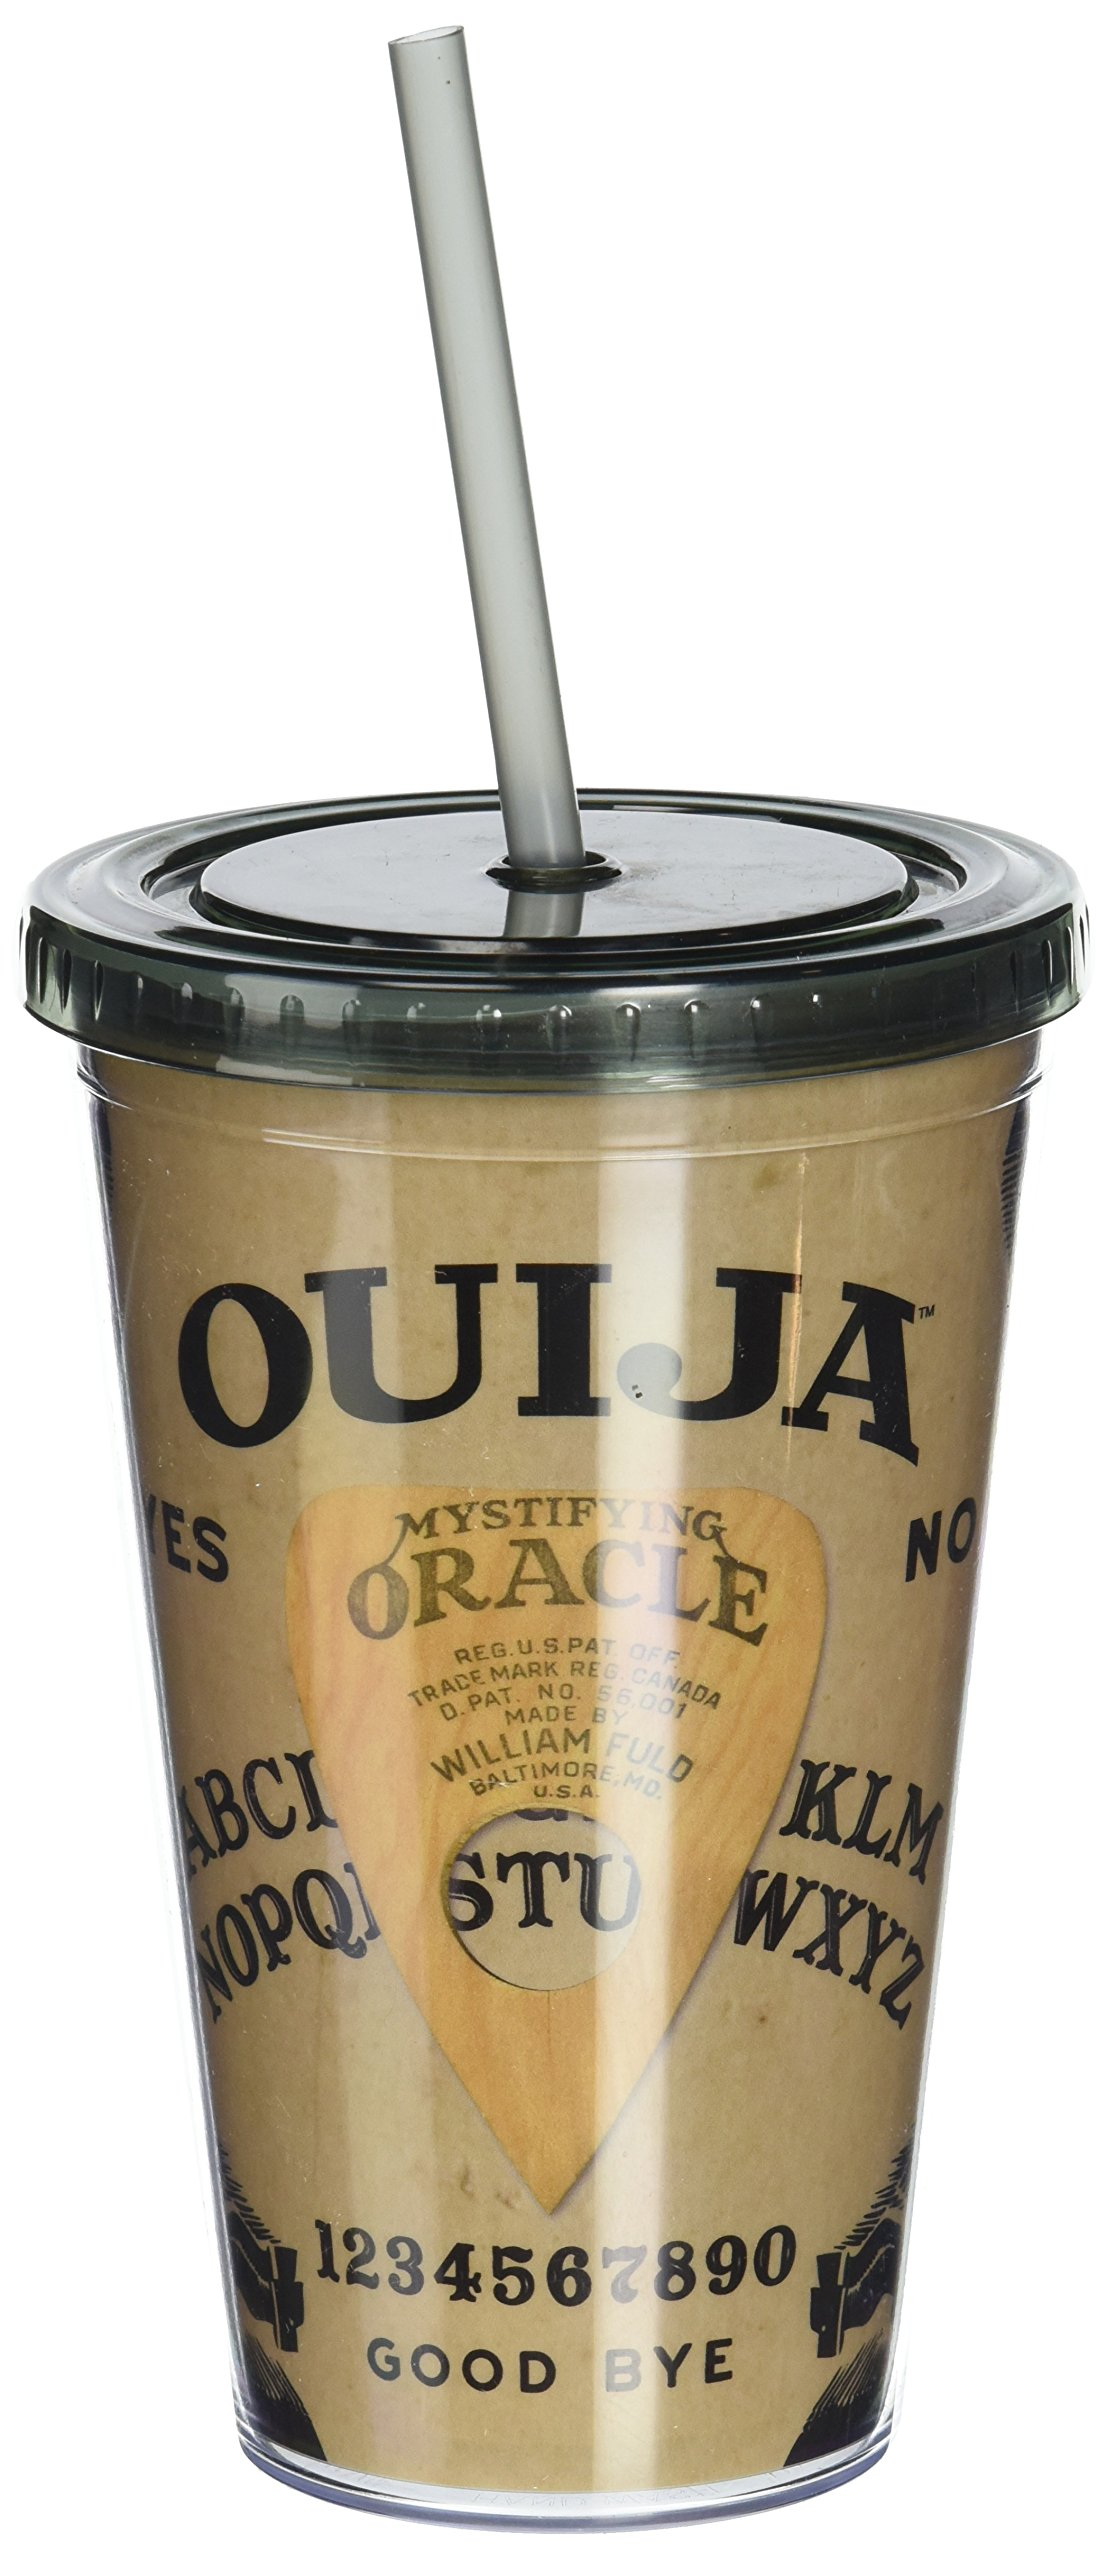 ICUP Hasbro Ouija Board Cup with Straw, Clear